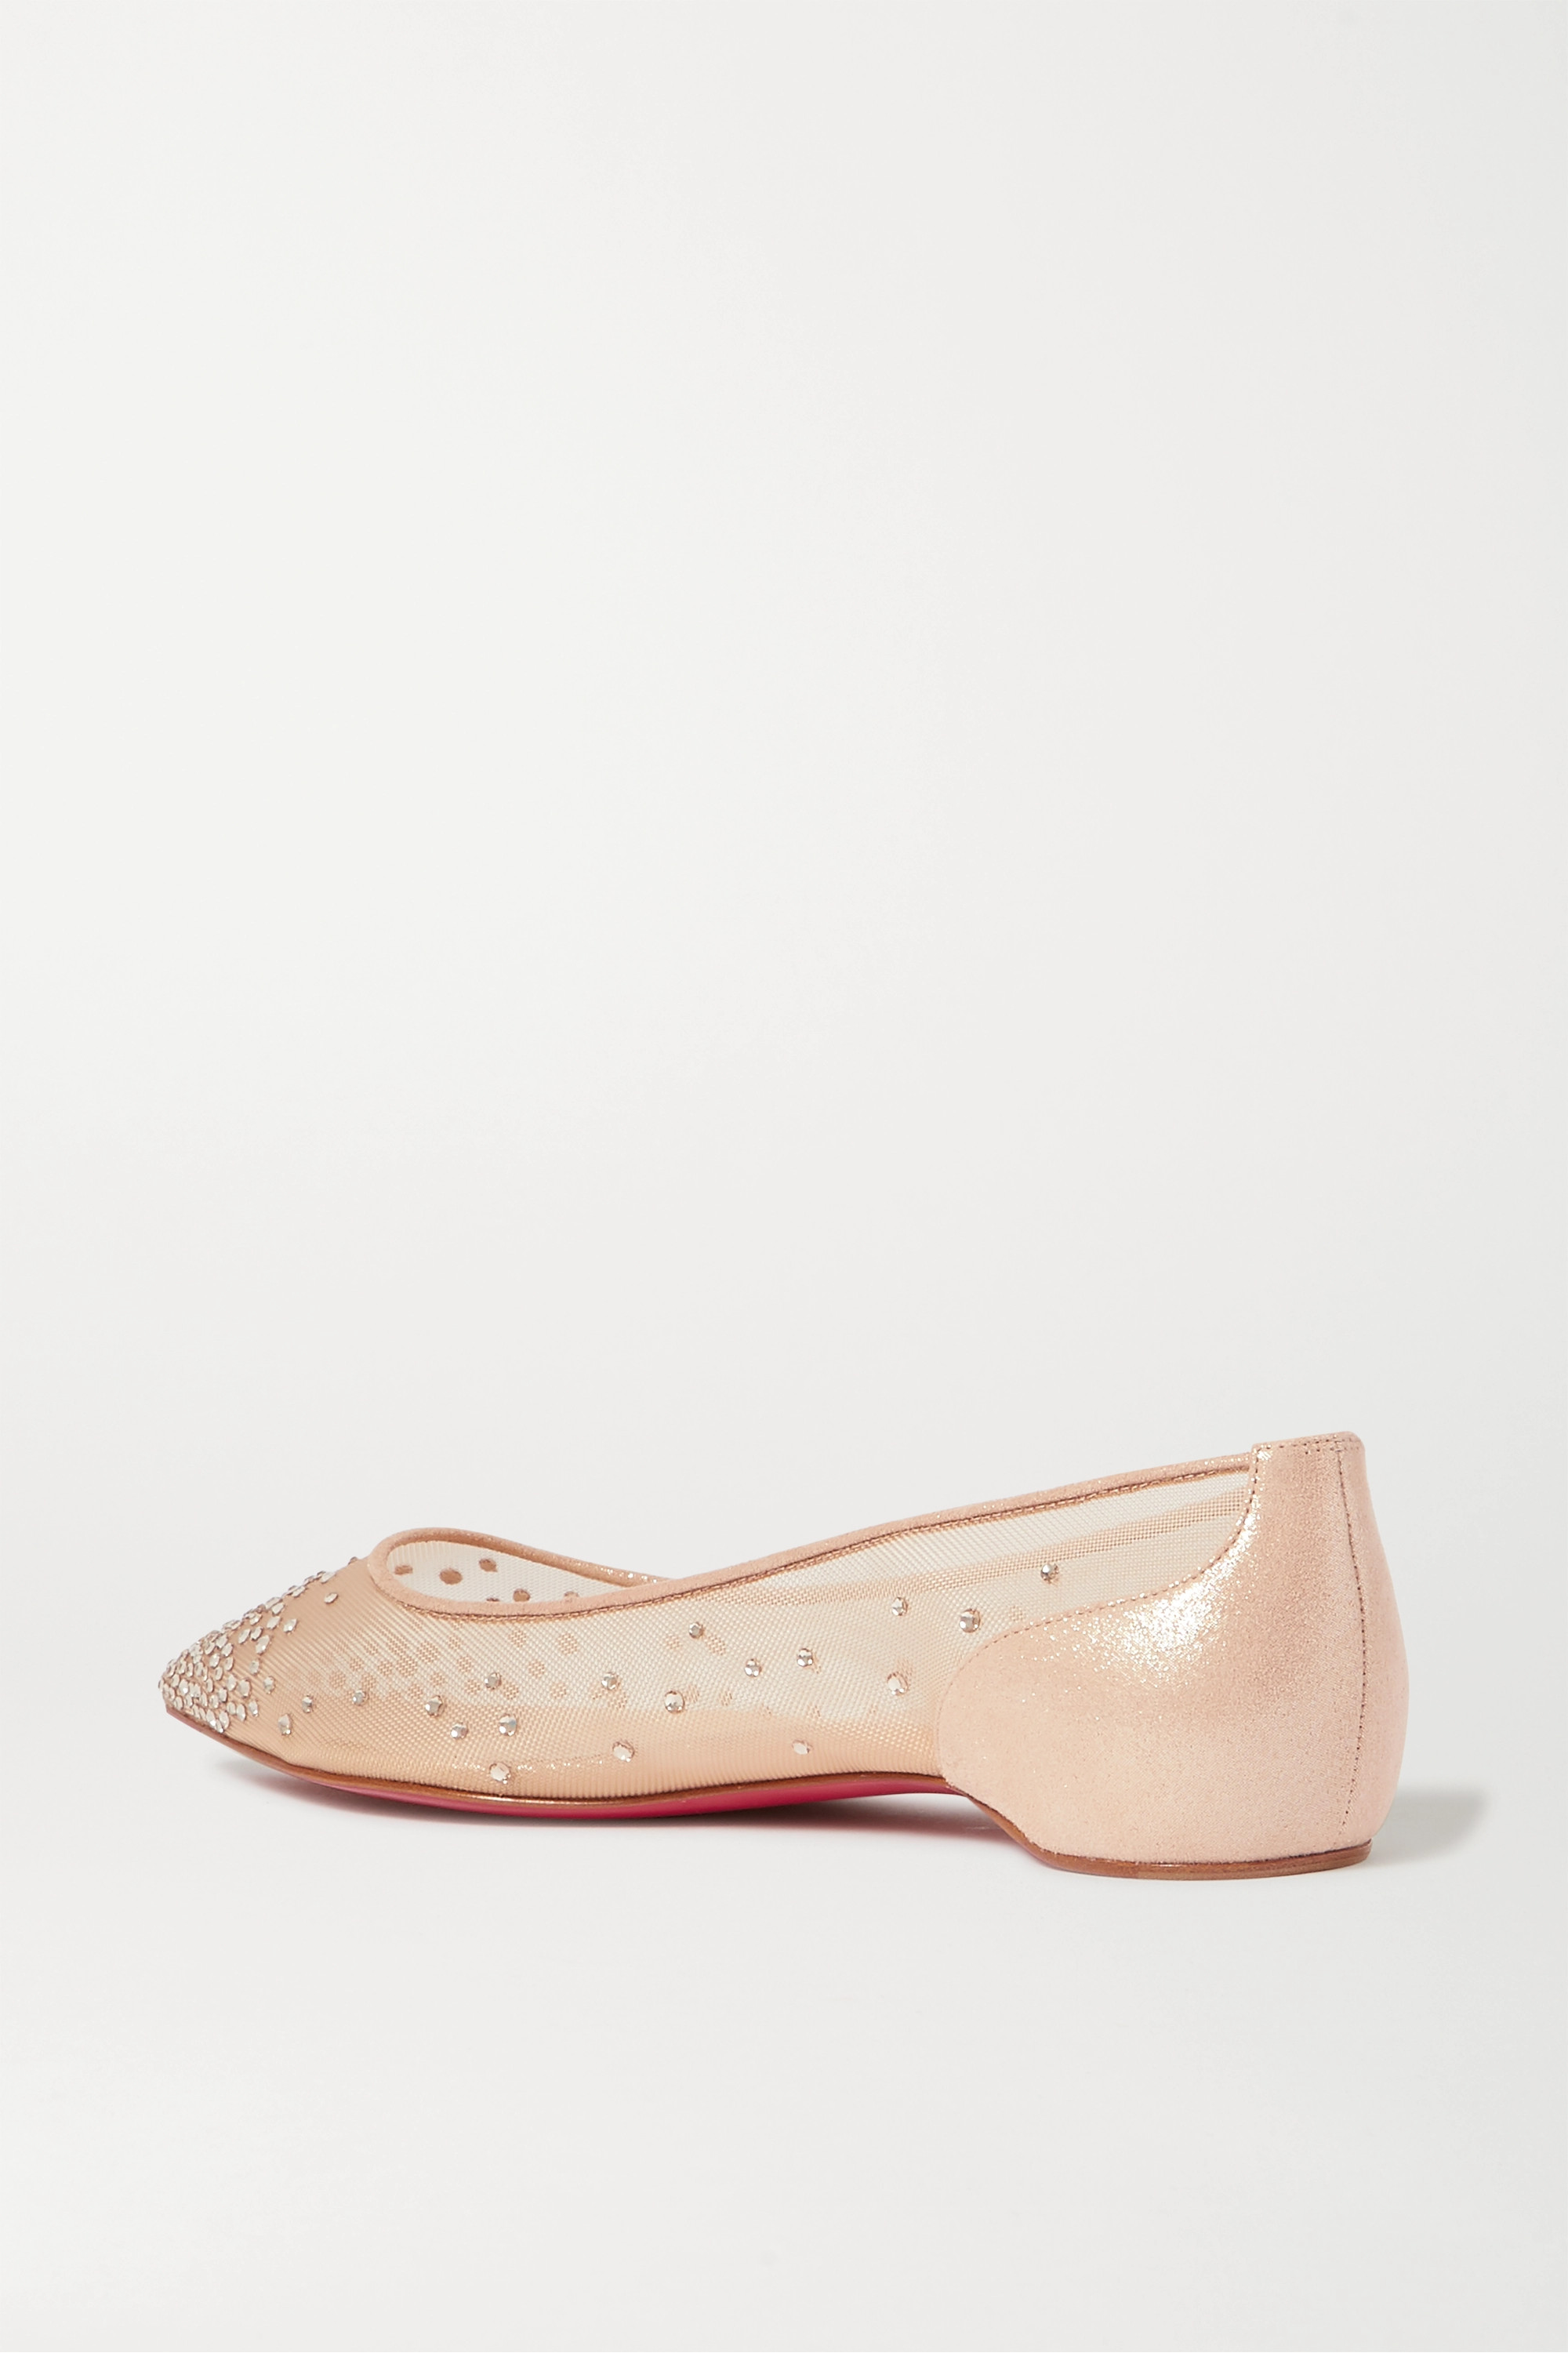 CHRISTIAN LOUBOUTIN Follies Swarovski crystal-embellished mesh and lamé point-toe flats